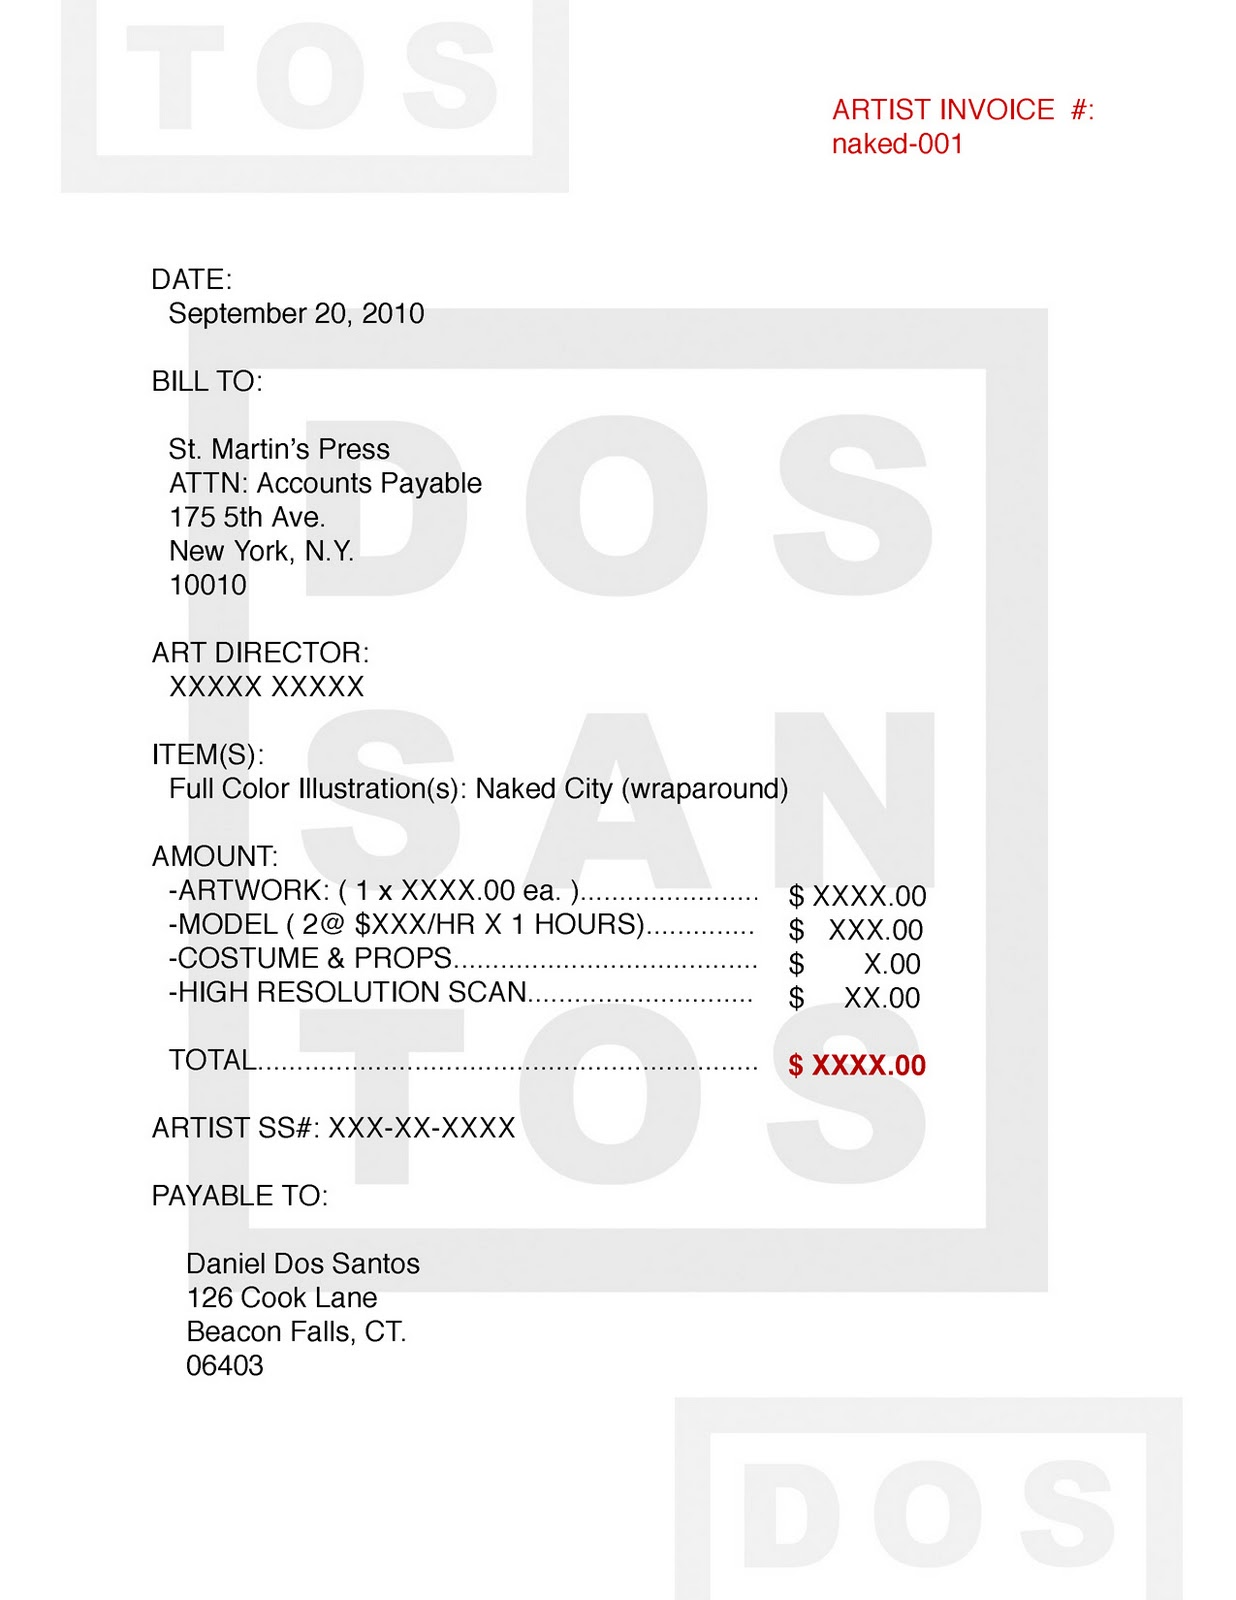 Totallocalus  Stunning Muddy Colors Invoices With Glamorous I Believe That This Format Contains All The Pertinent Information That A Good Invoice Should Have And Can Serve As A Decent Template For Your Own With Astonishing Preform Invoice Also Ford Fiesta Invoice Price In Addition Invoice For Consulting And Invoice Sample Download As Well As Free Invoice Word Template Additionally Invoice Sheet Template From Muddycolorsblogspotcom With Totallocalus  Glamorous Muddy Colors Invoices With Astonishing I Believe That This Format Contains All The Pertinent Information That A Good Invoice Should Have And Can Serve As A Decent Template For Your Own And Stunning Preform Invoice Also Ford Fiesta Invoice Price In Addition Invoice For Consulting From Muddycolorsblogspotcom